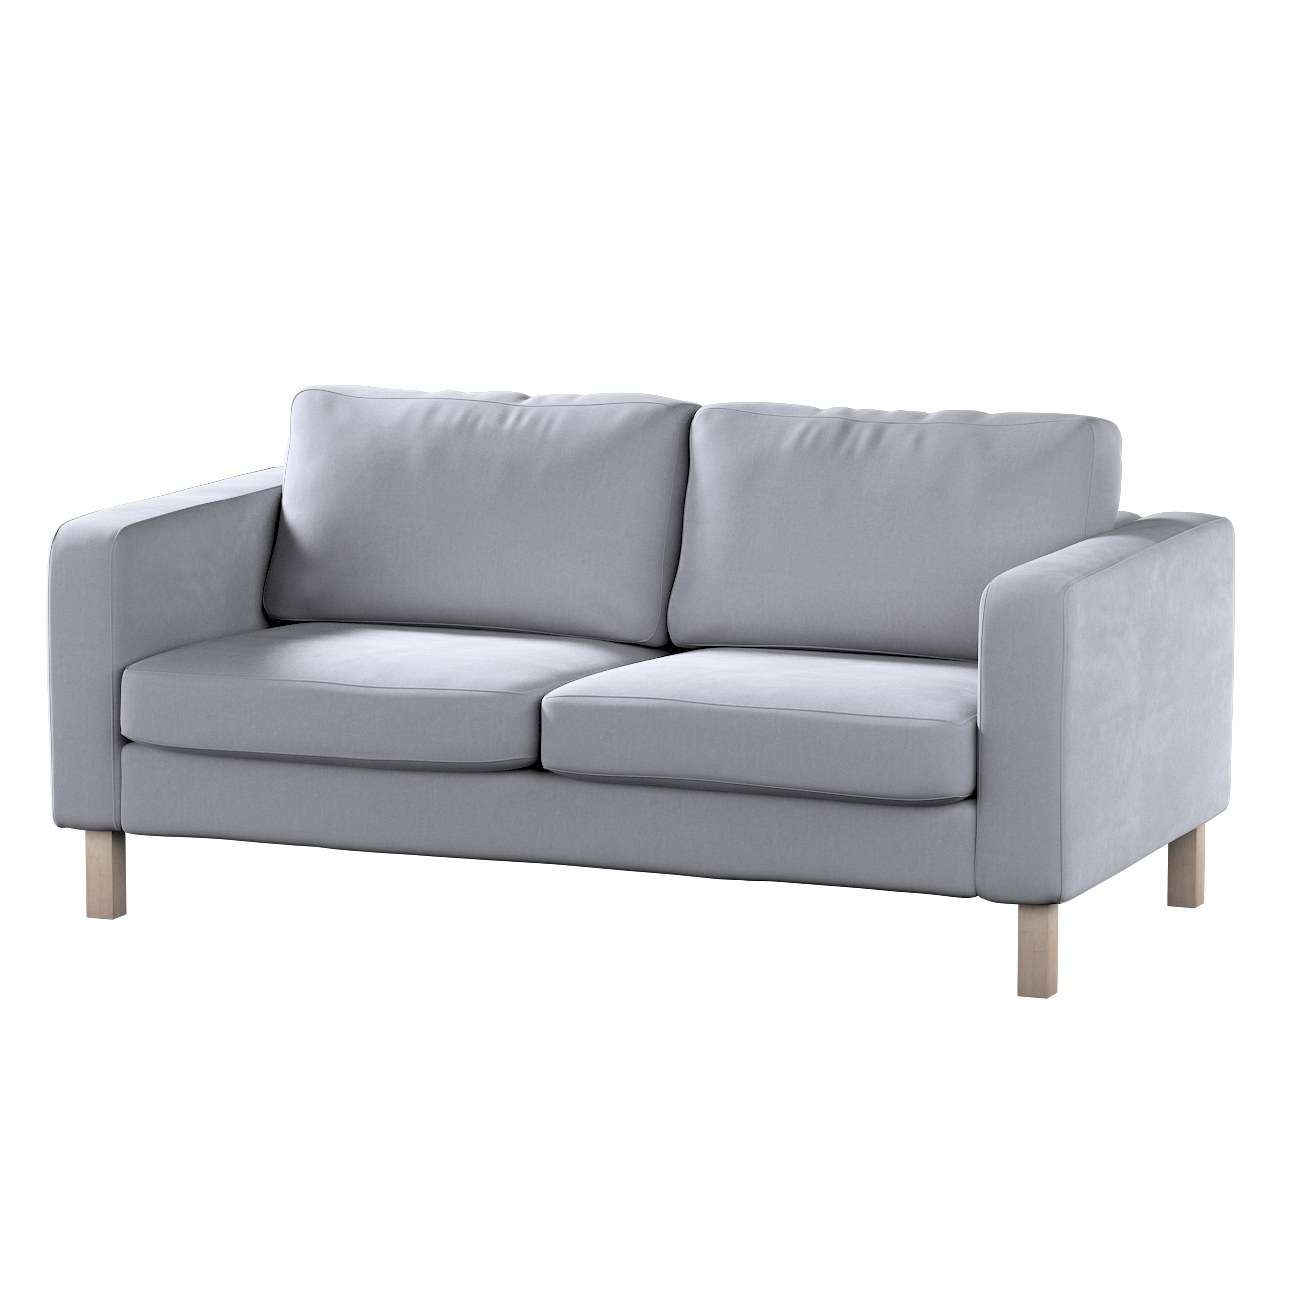 Karlstad 2-seater sofa cover in collection Velvet, fabric: 704-24